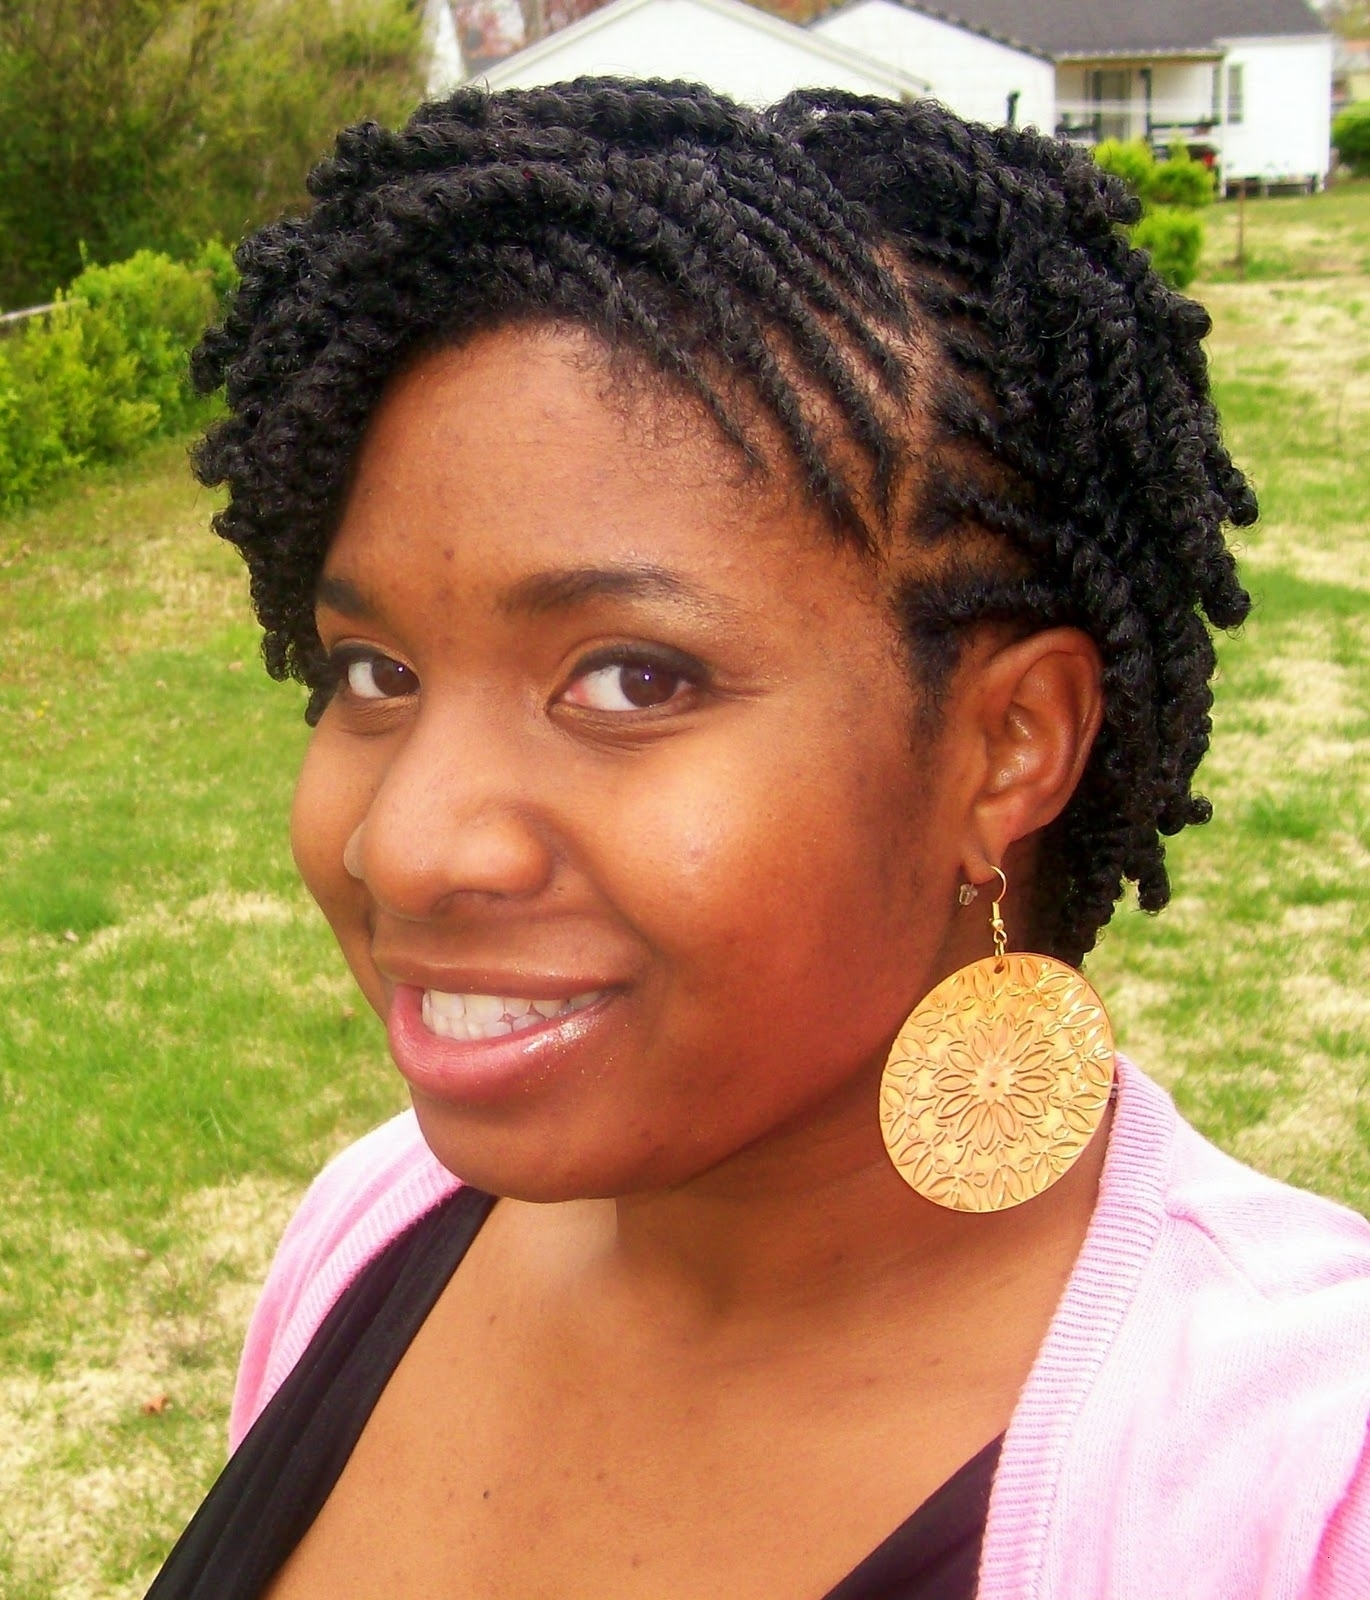 Well Liked Braided Hairstyles For Natural Hair Inside Twist Hairstyles For Natural Hair Inspirational Awesome Braided (View 15 of 15)